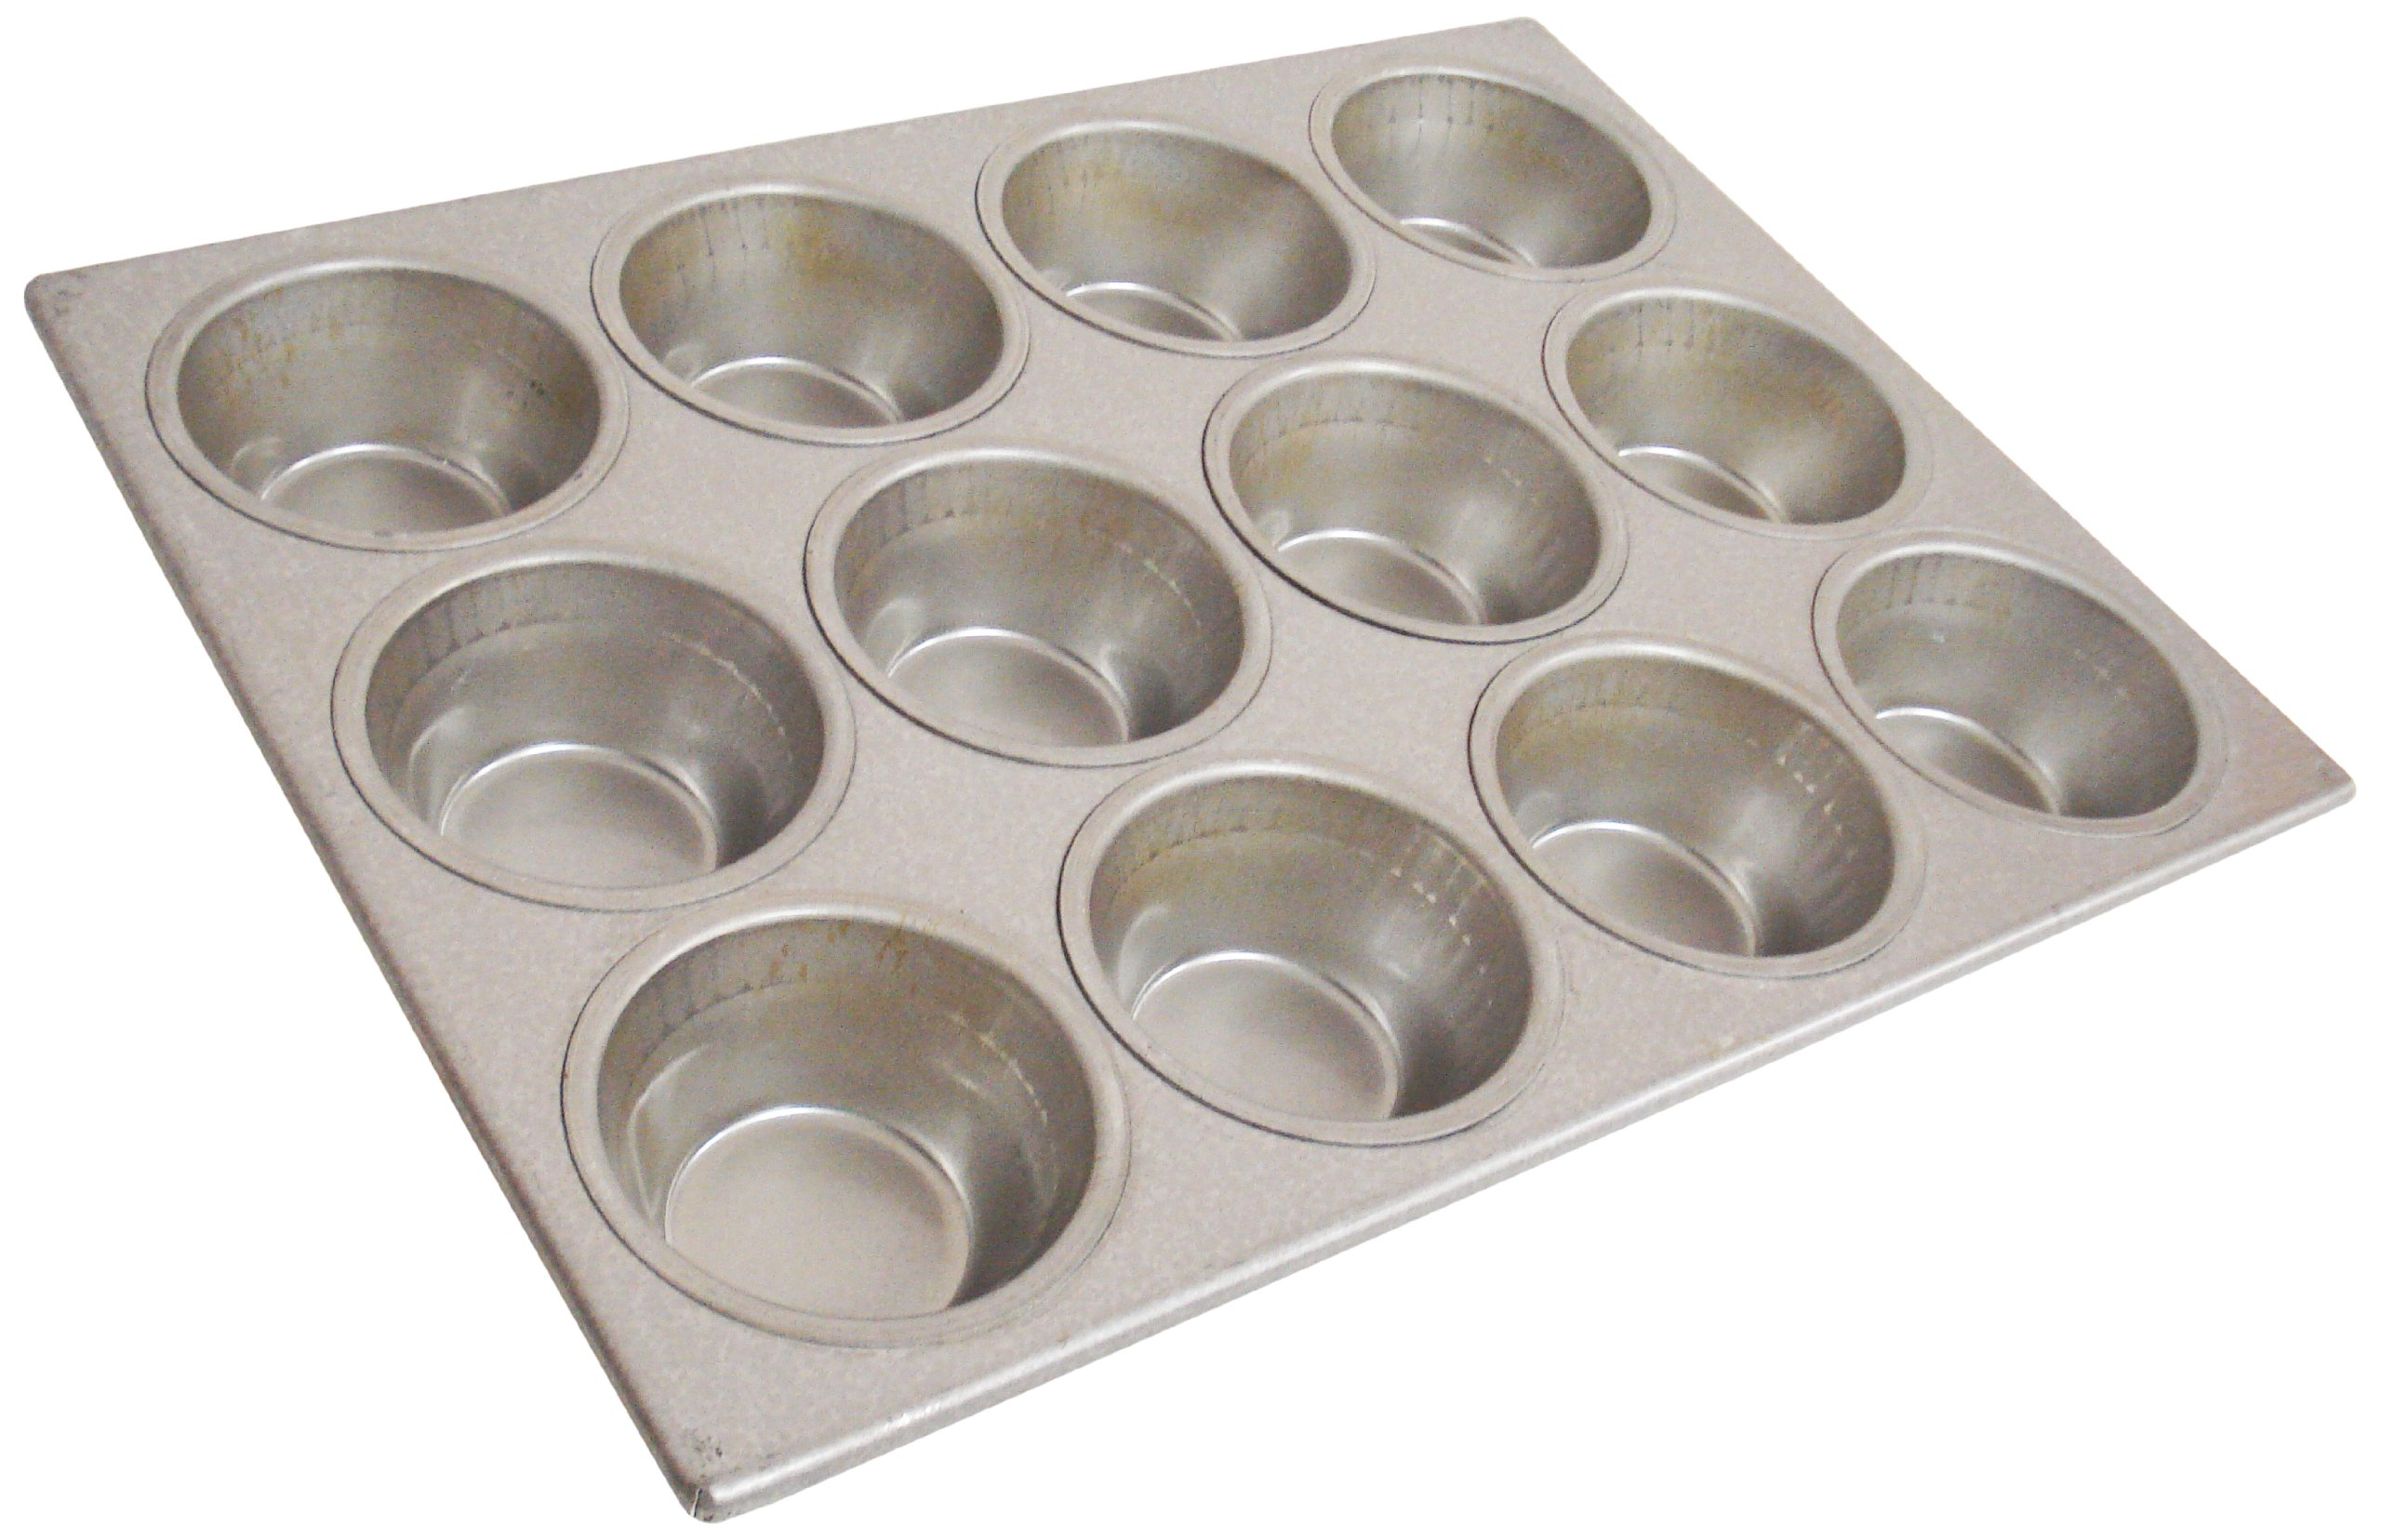 Magna Industries 15350 22-Gauge Aluminized Steel Pecan Roll Muffin Pan, 3-11/16'' Diameter, 3 x 4 Cups Layout (Pack of 6)